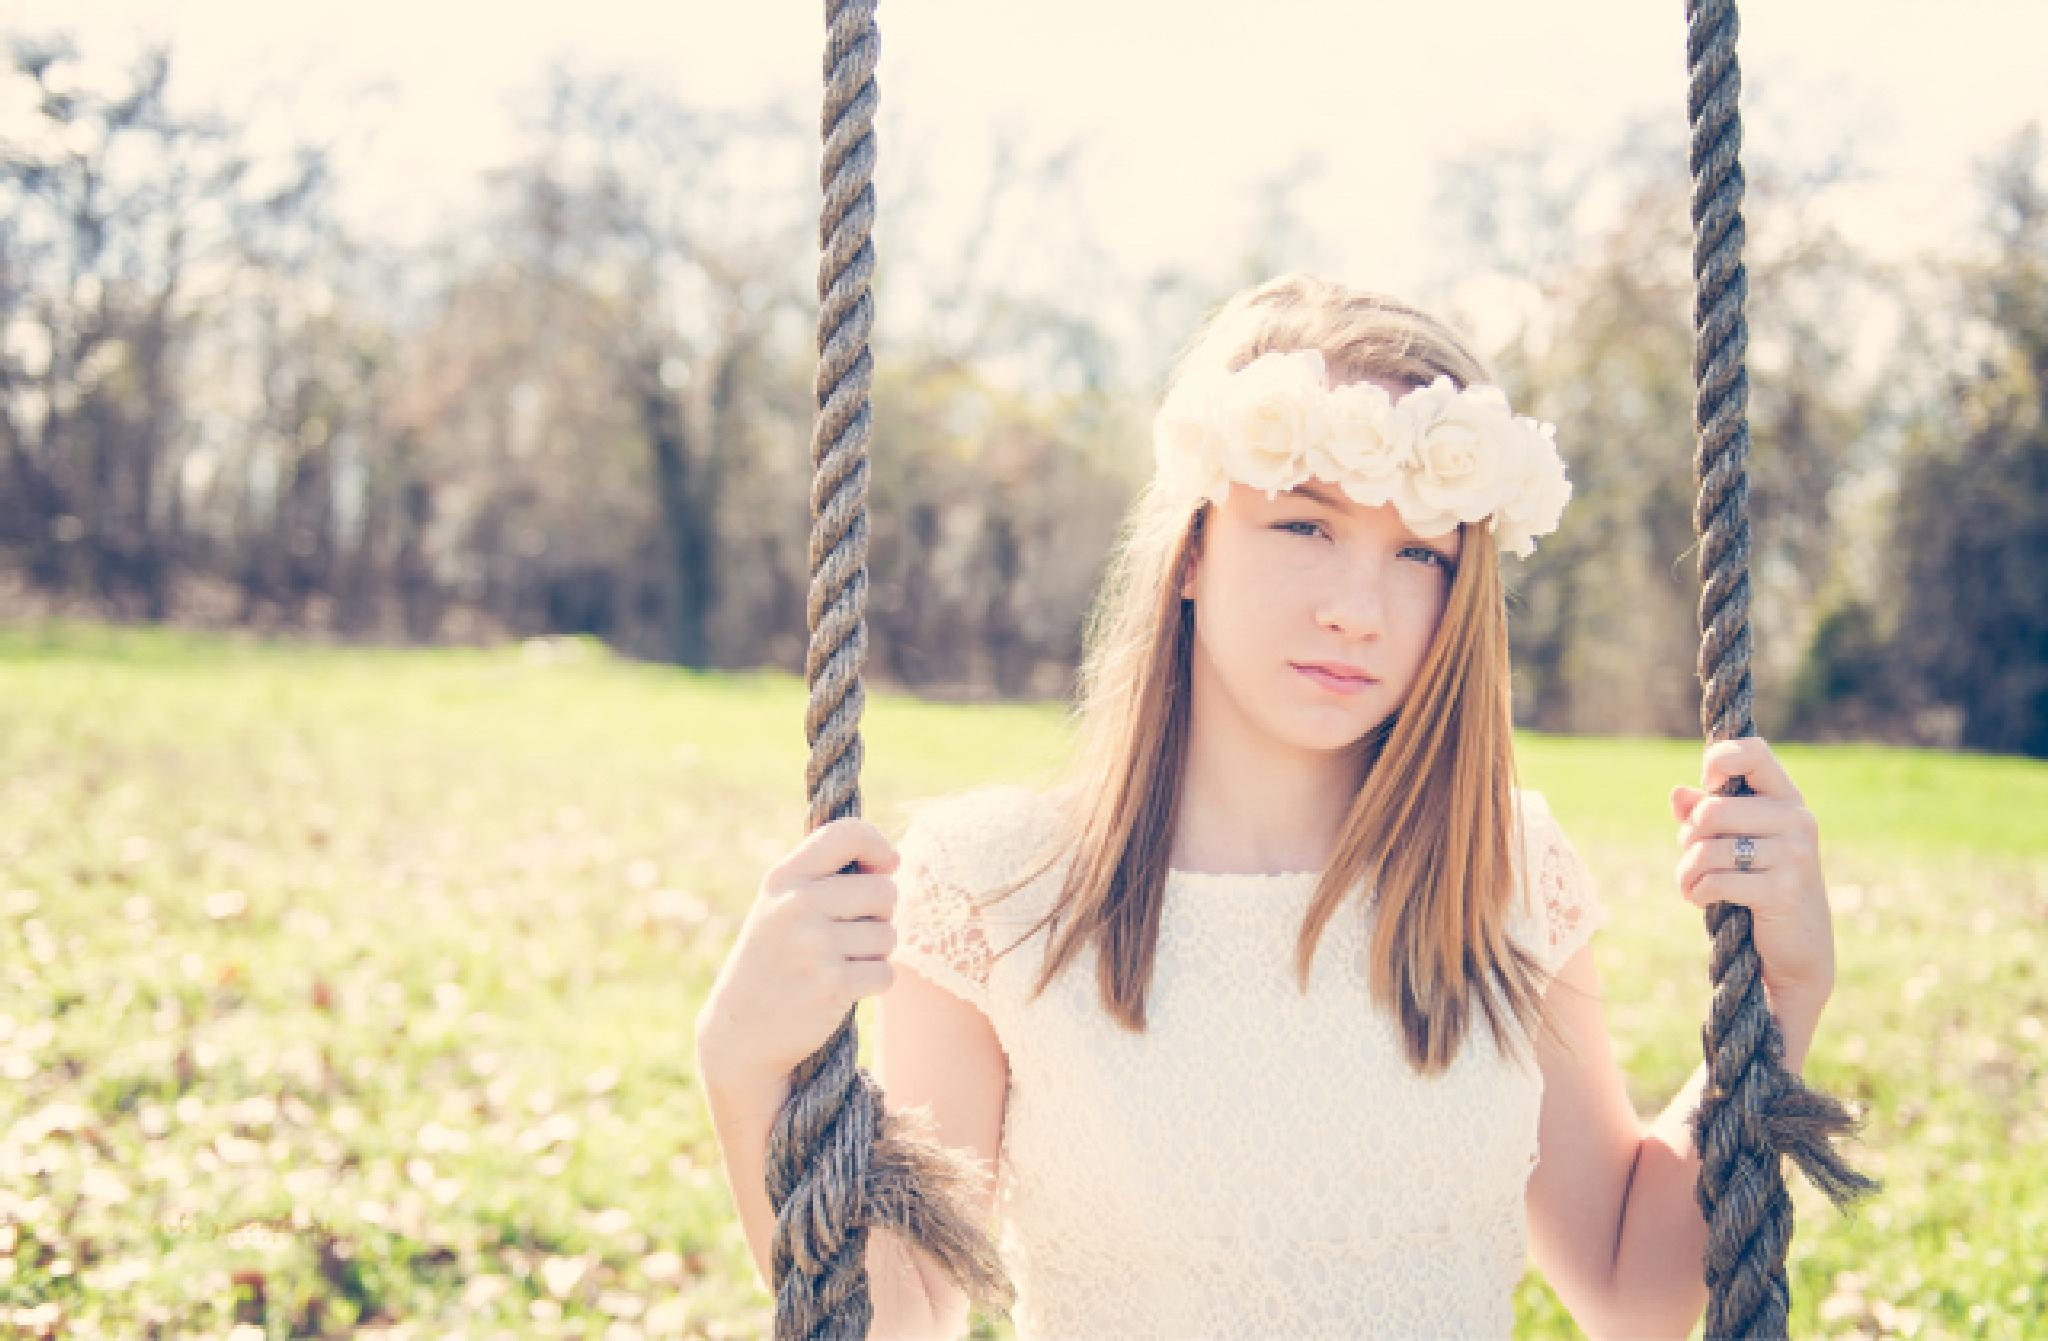 IMG_1719 by vintagecouturephotography